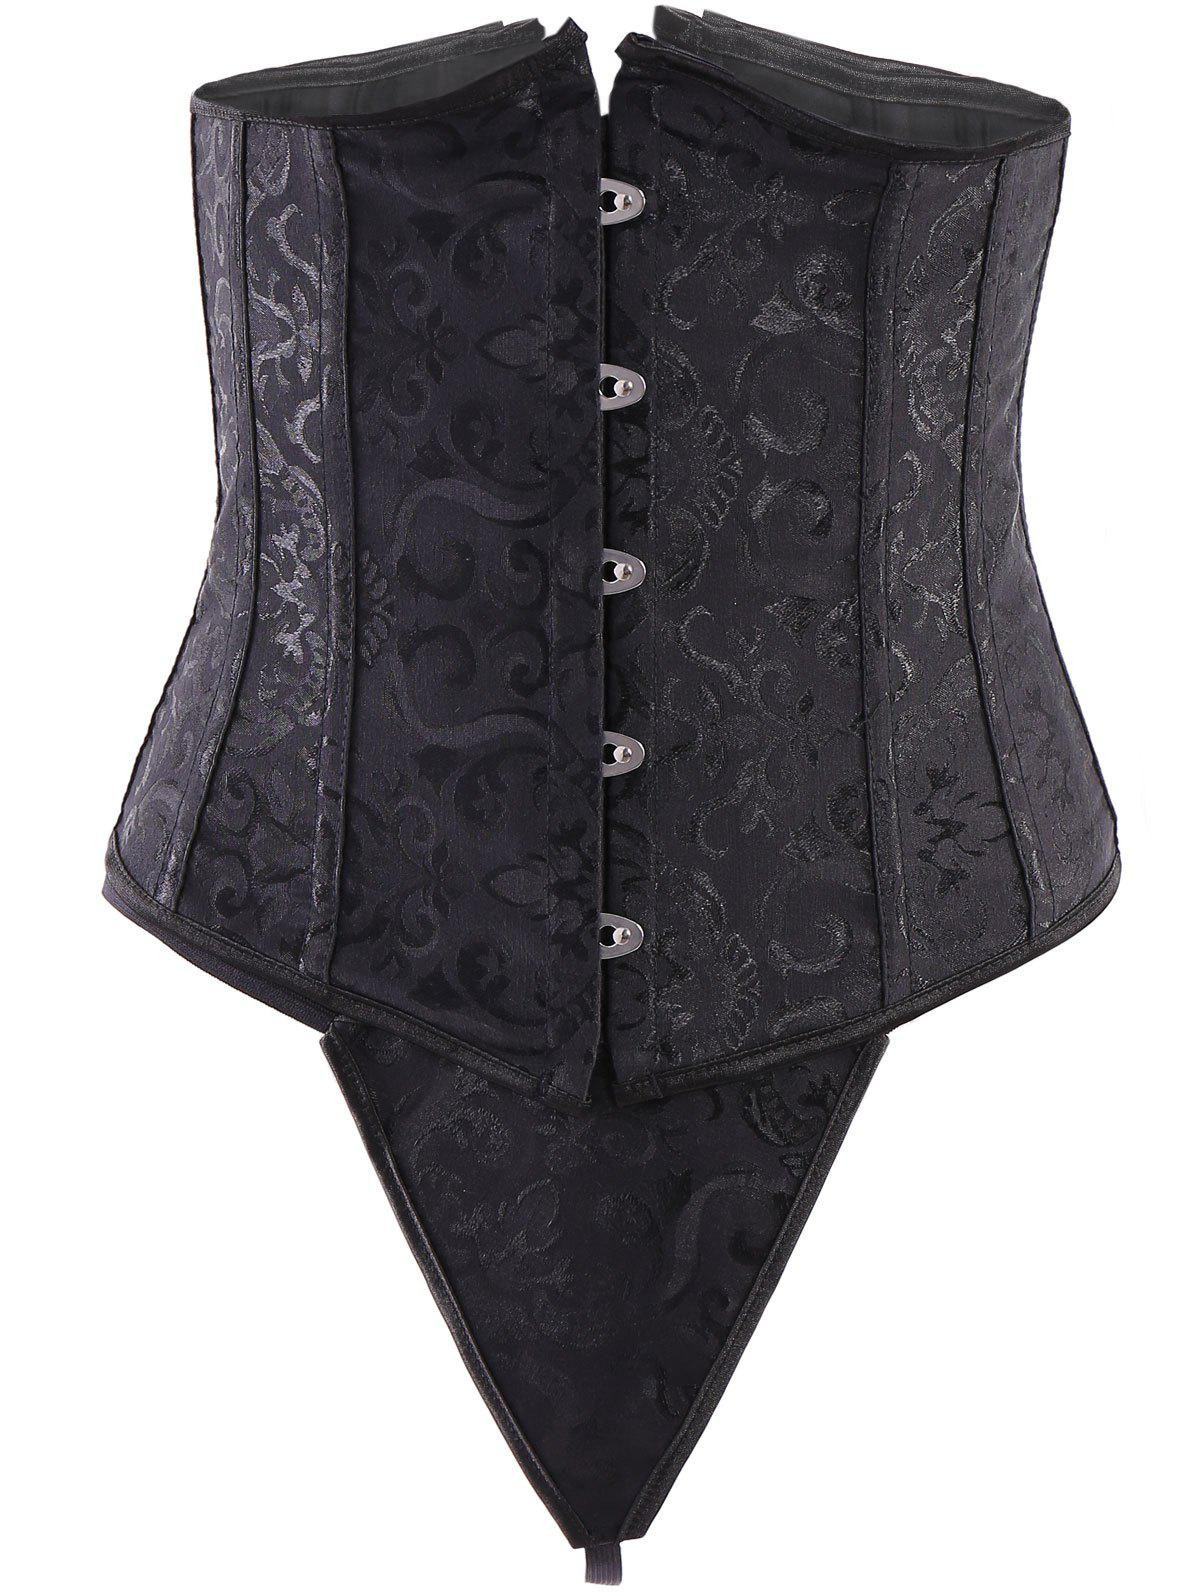 Alluring Lace-Up Solid Color Women's Waist Slimming Corset